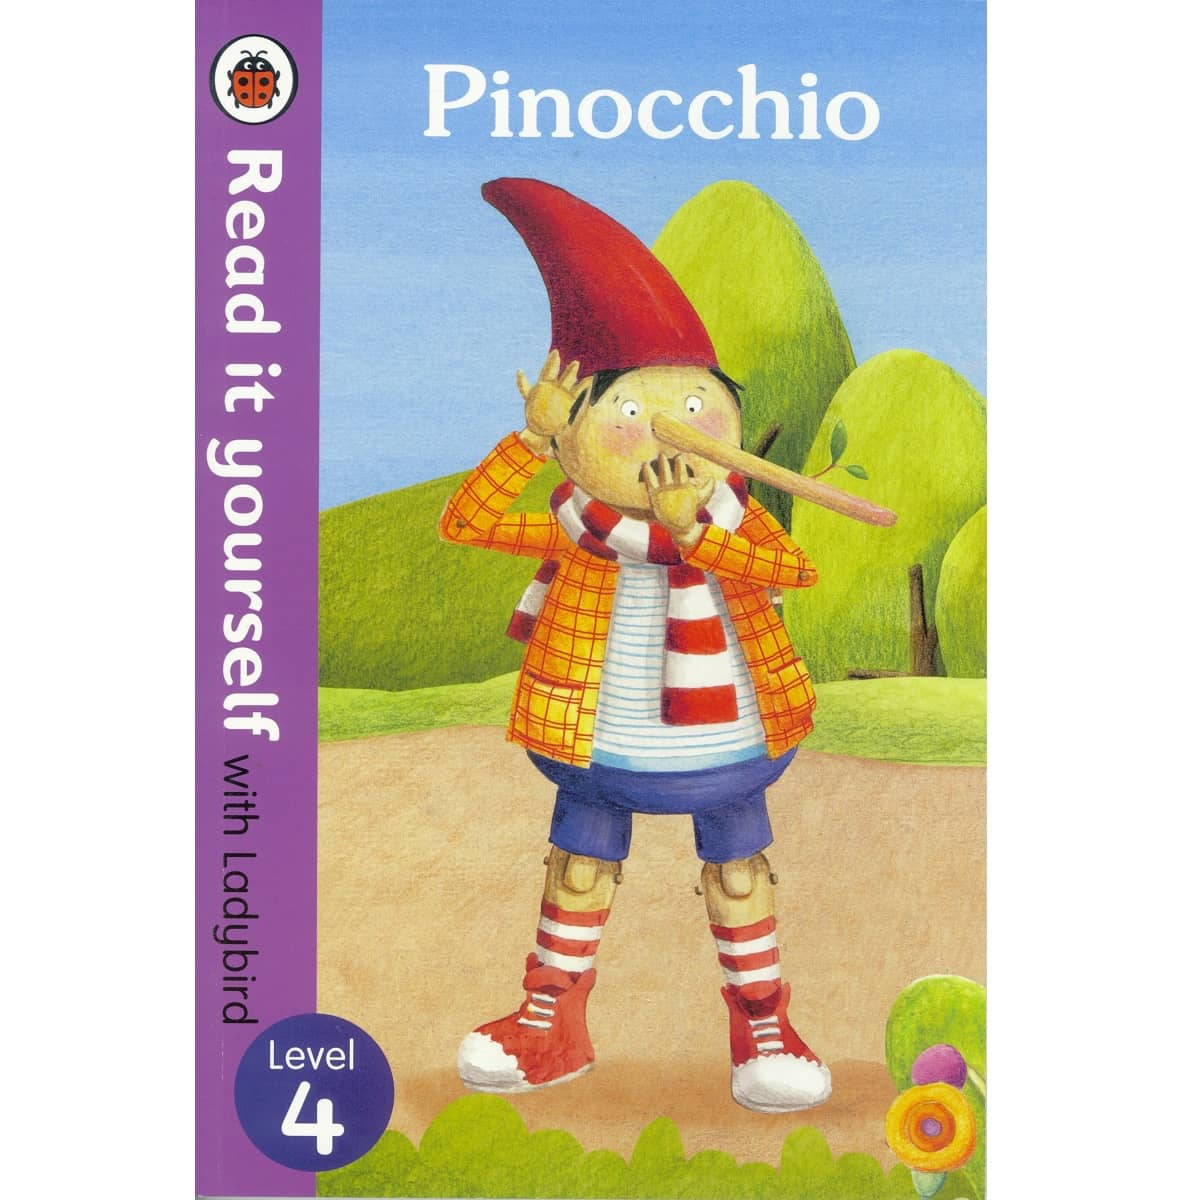 Read It Yourself Level 4 ~ Pinocchio – By Ladybird